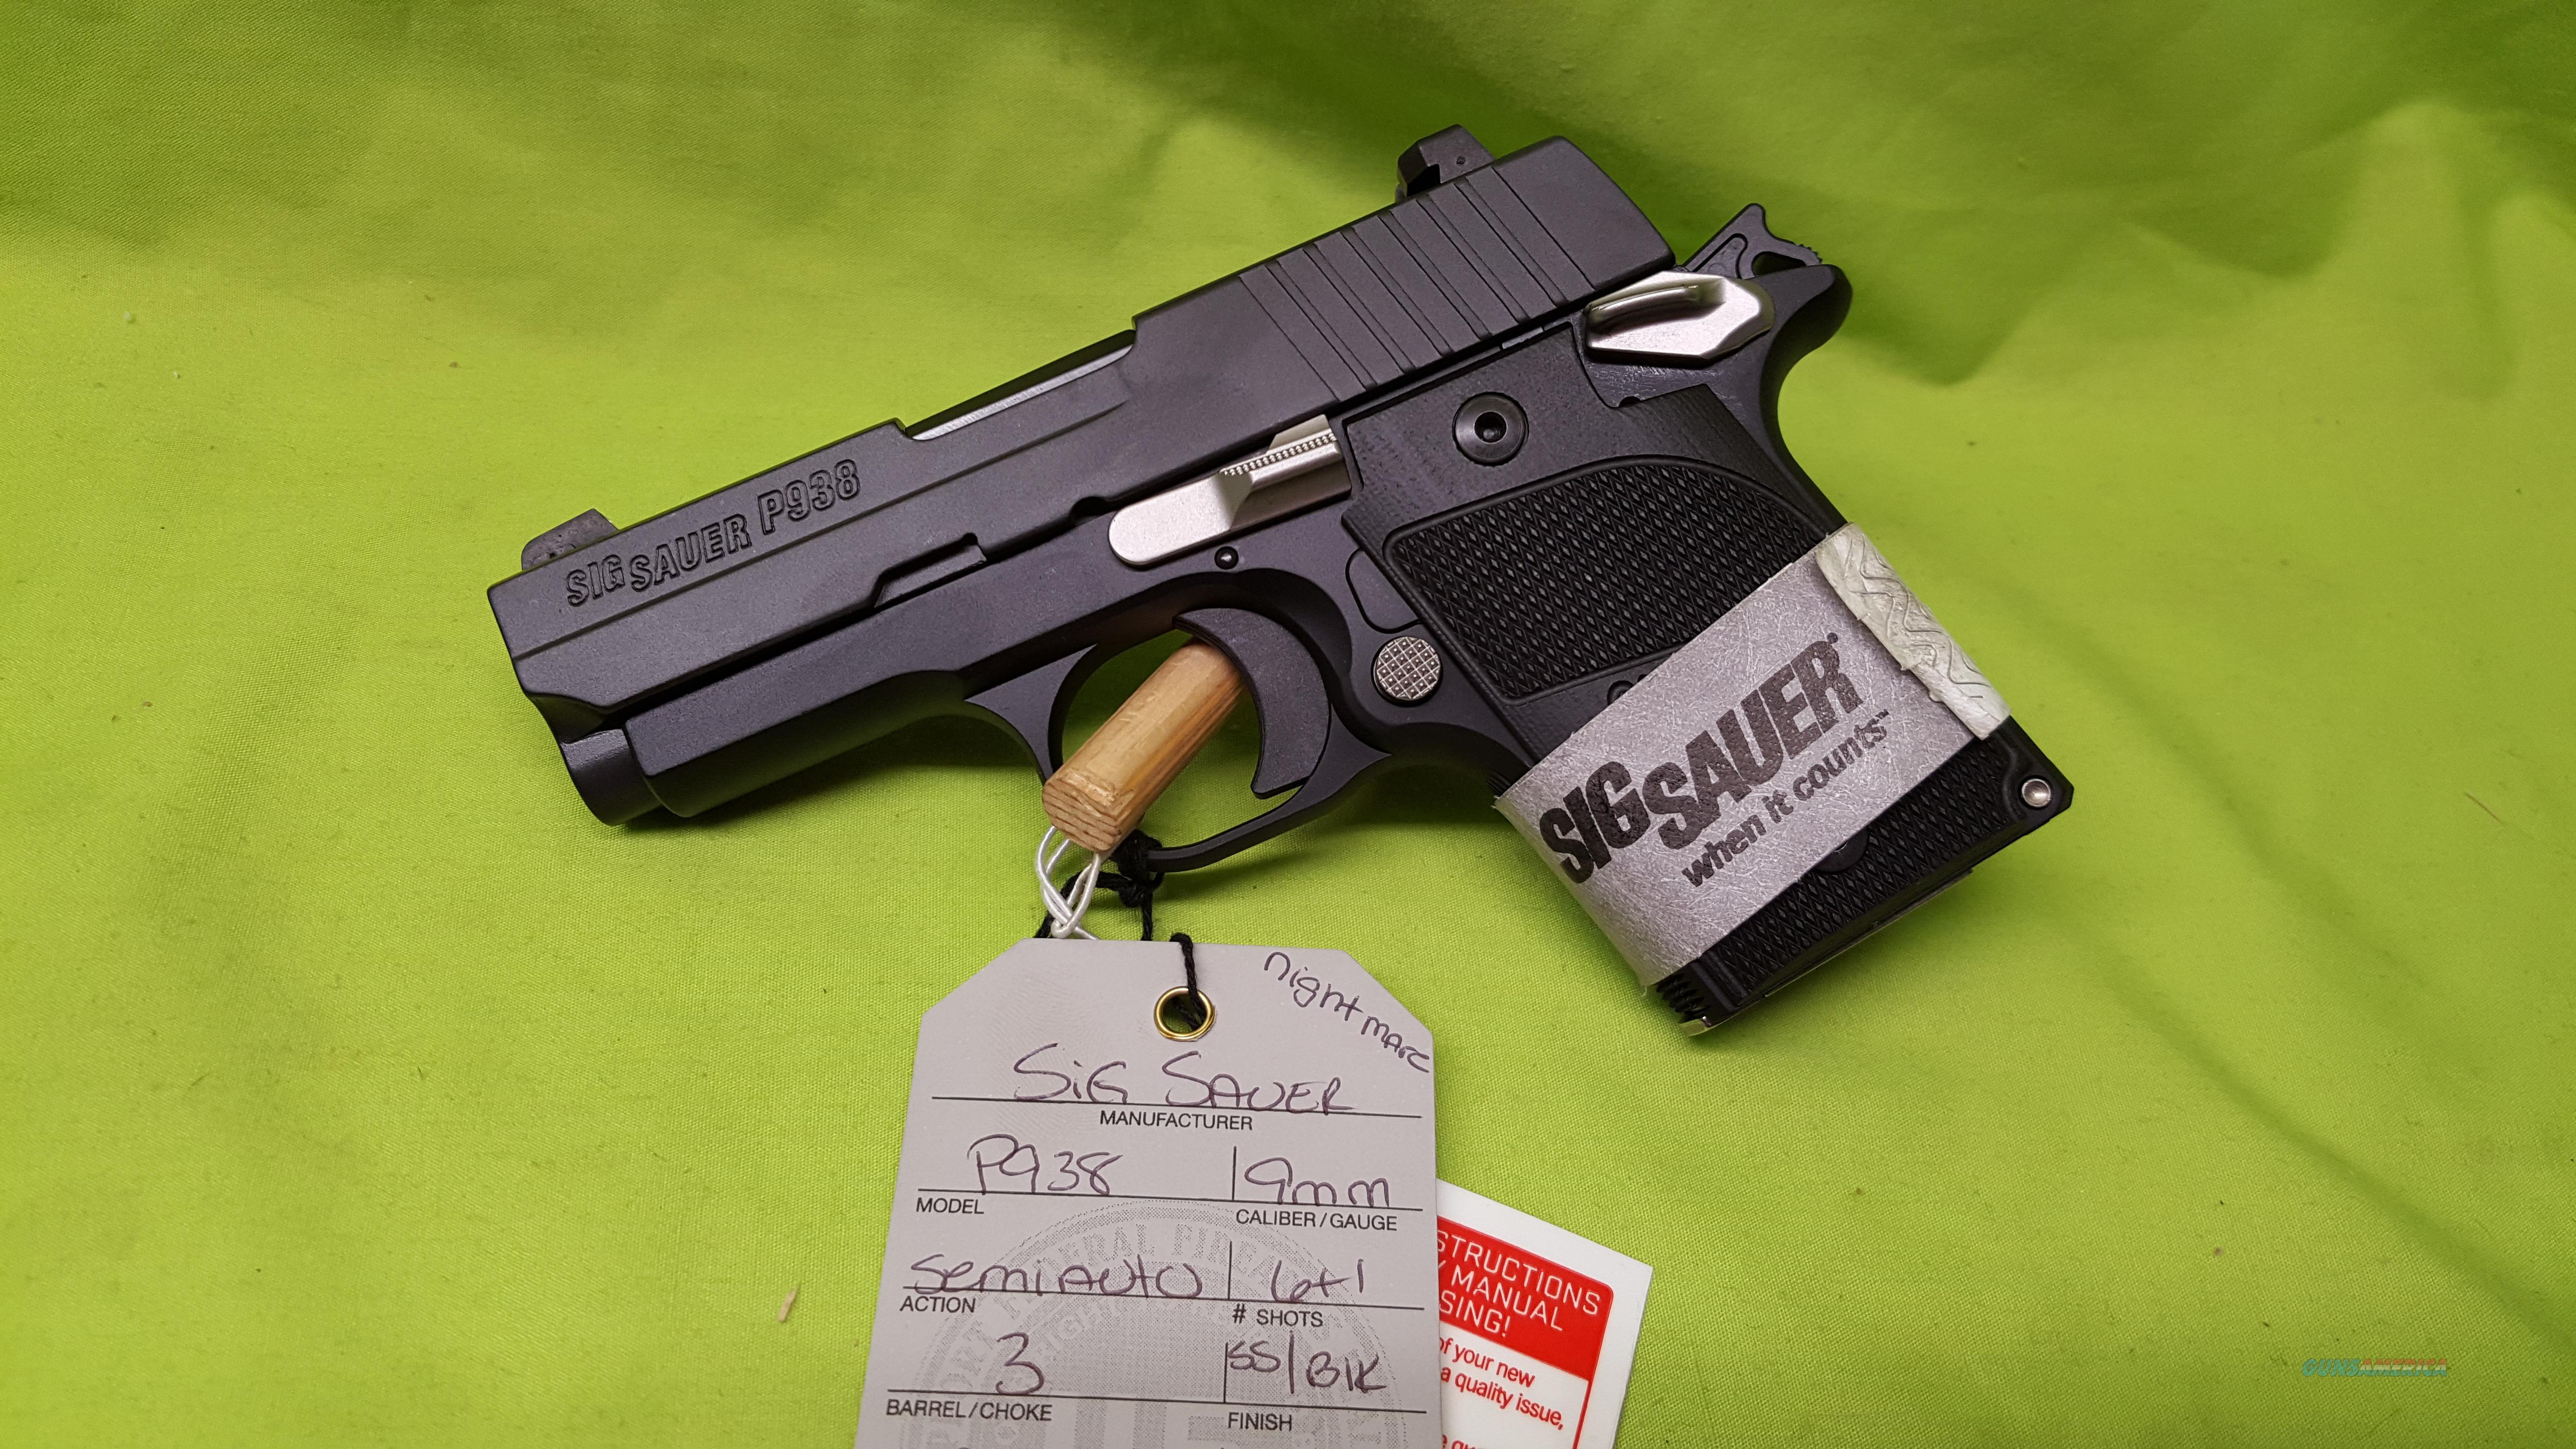 SIG SAUER P938 NIGHTMARE 9MM 9 MM 6RD SS BLACK 938  Guns > Pistols > Sig - Sauer/Sigarms Pistols > Other